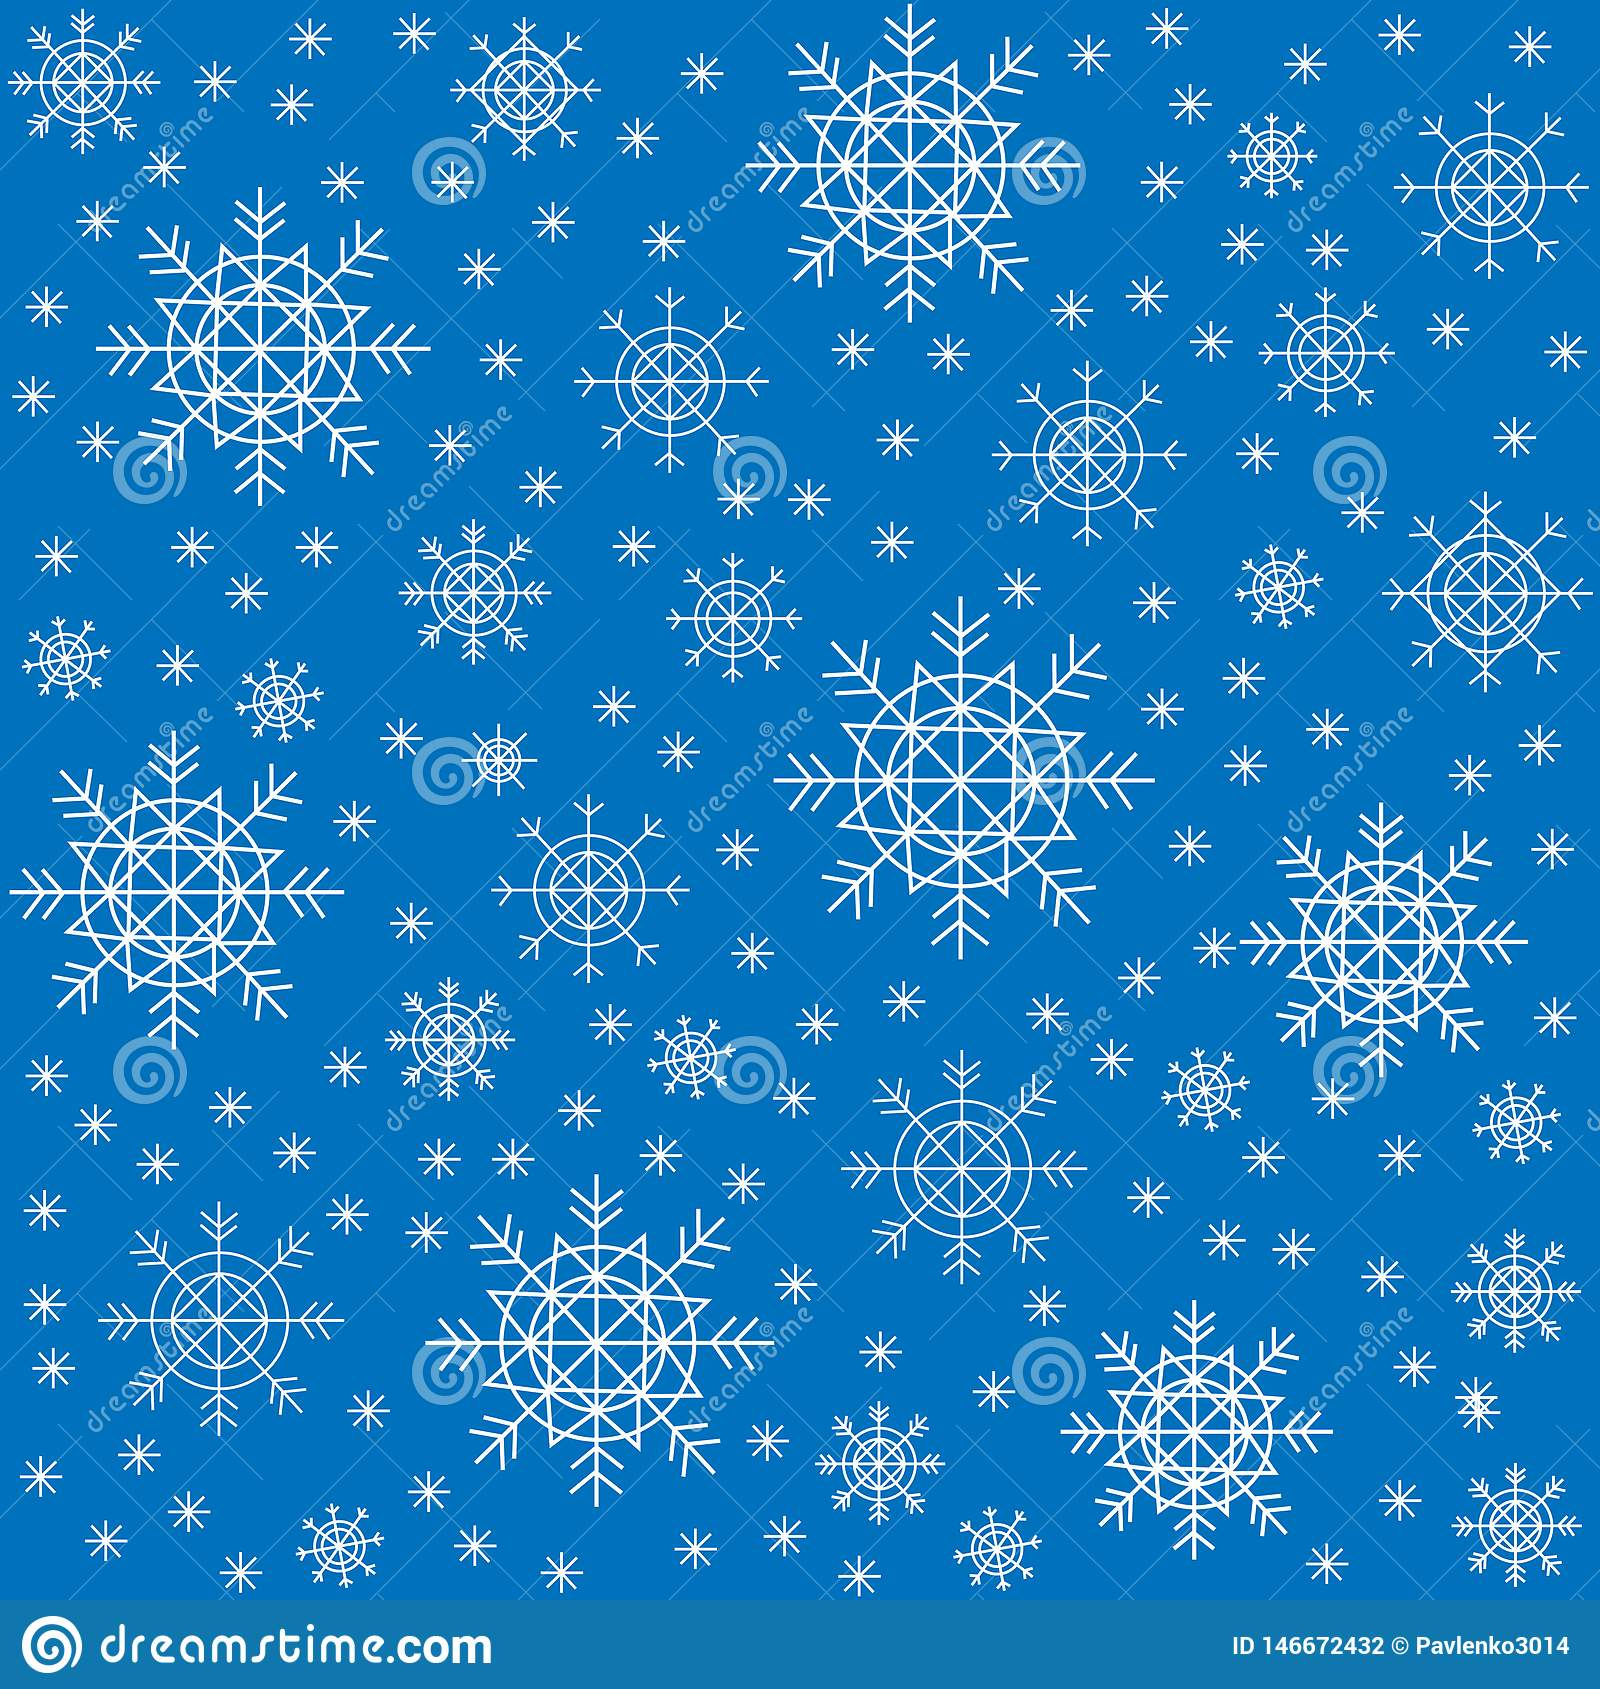 Seamless pattern. Beautiful winter snowflakes. Suitable as packaging for Christmas gifts. Creates a festive mood. Vector